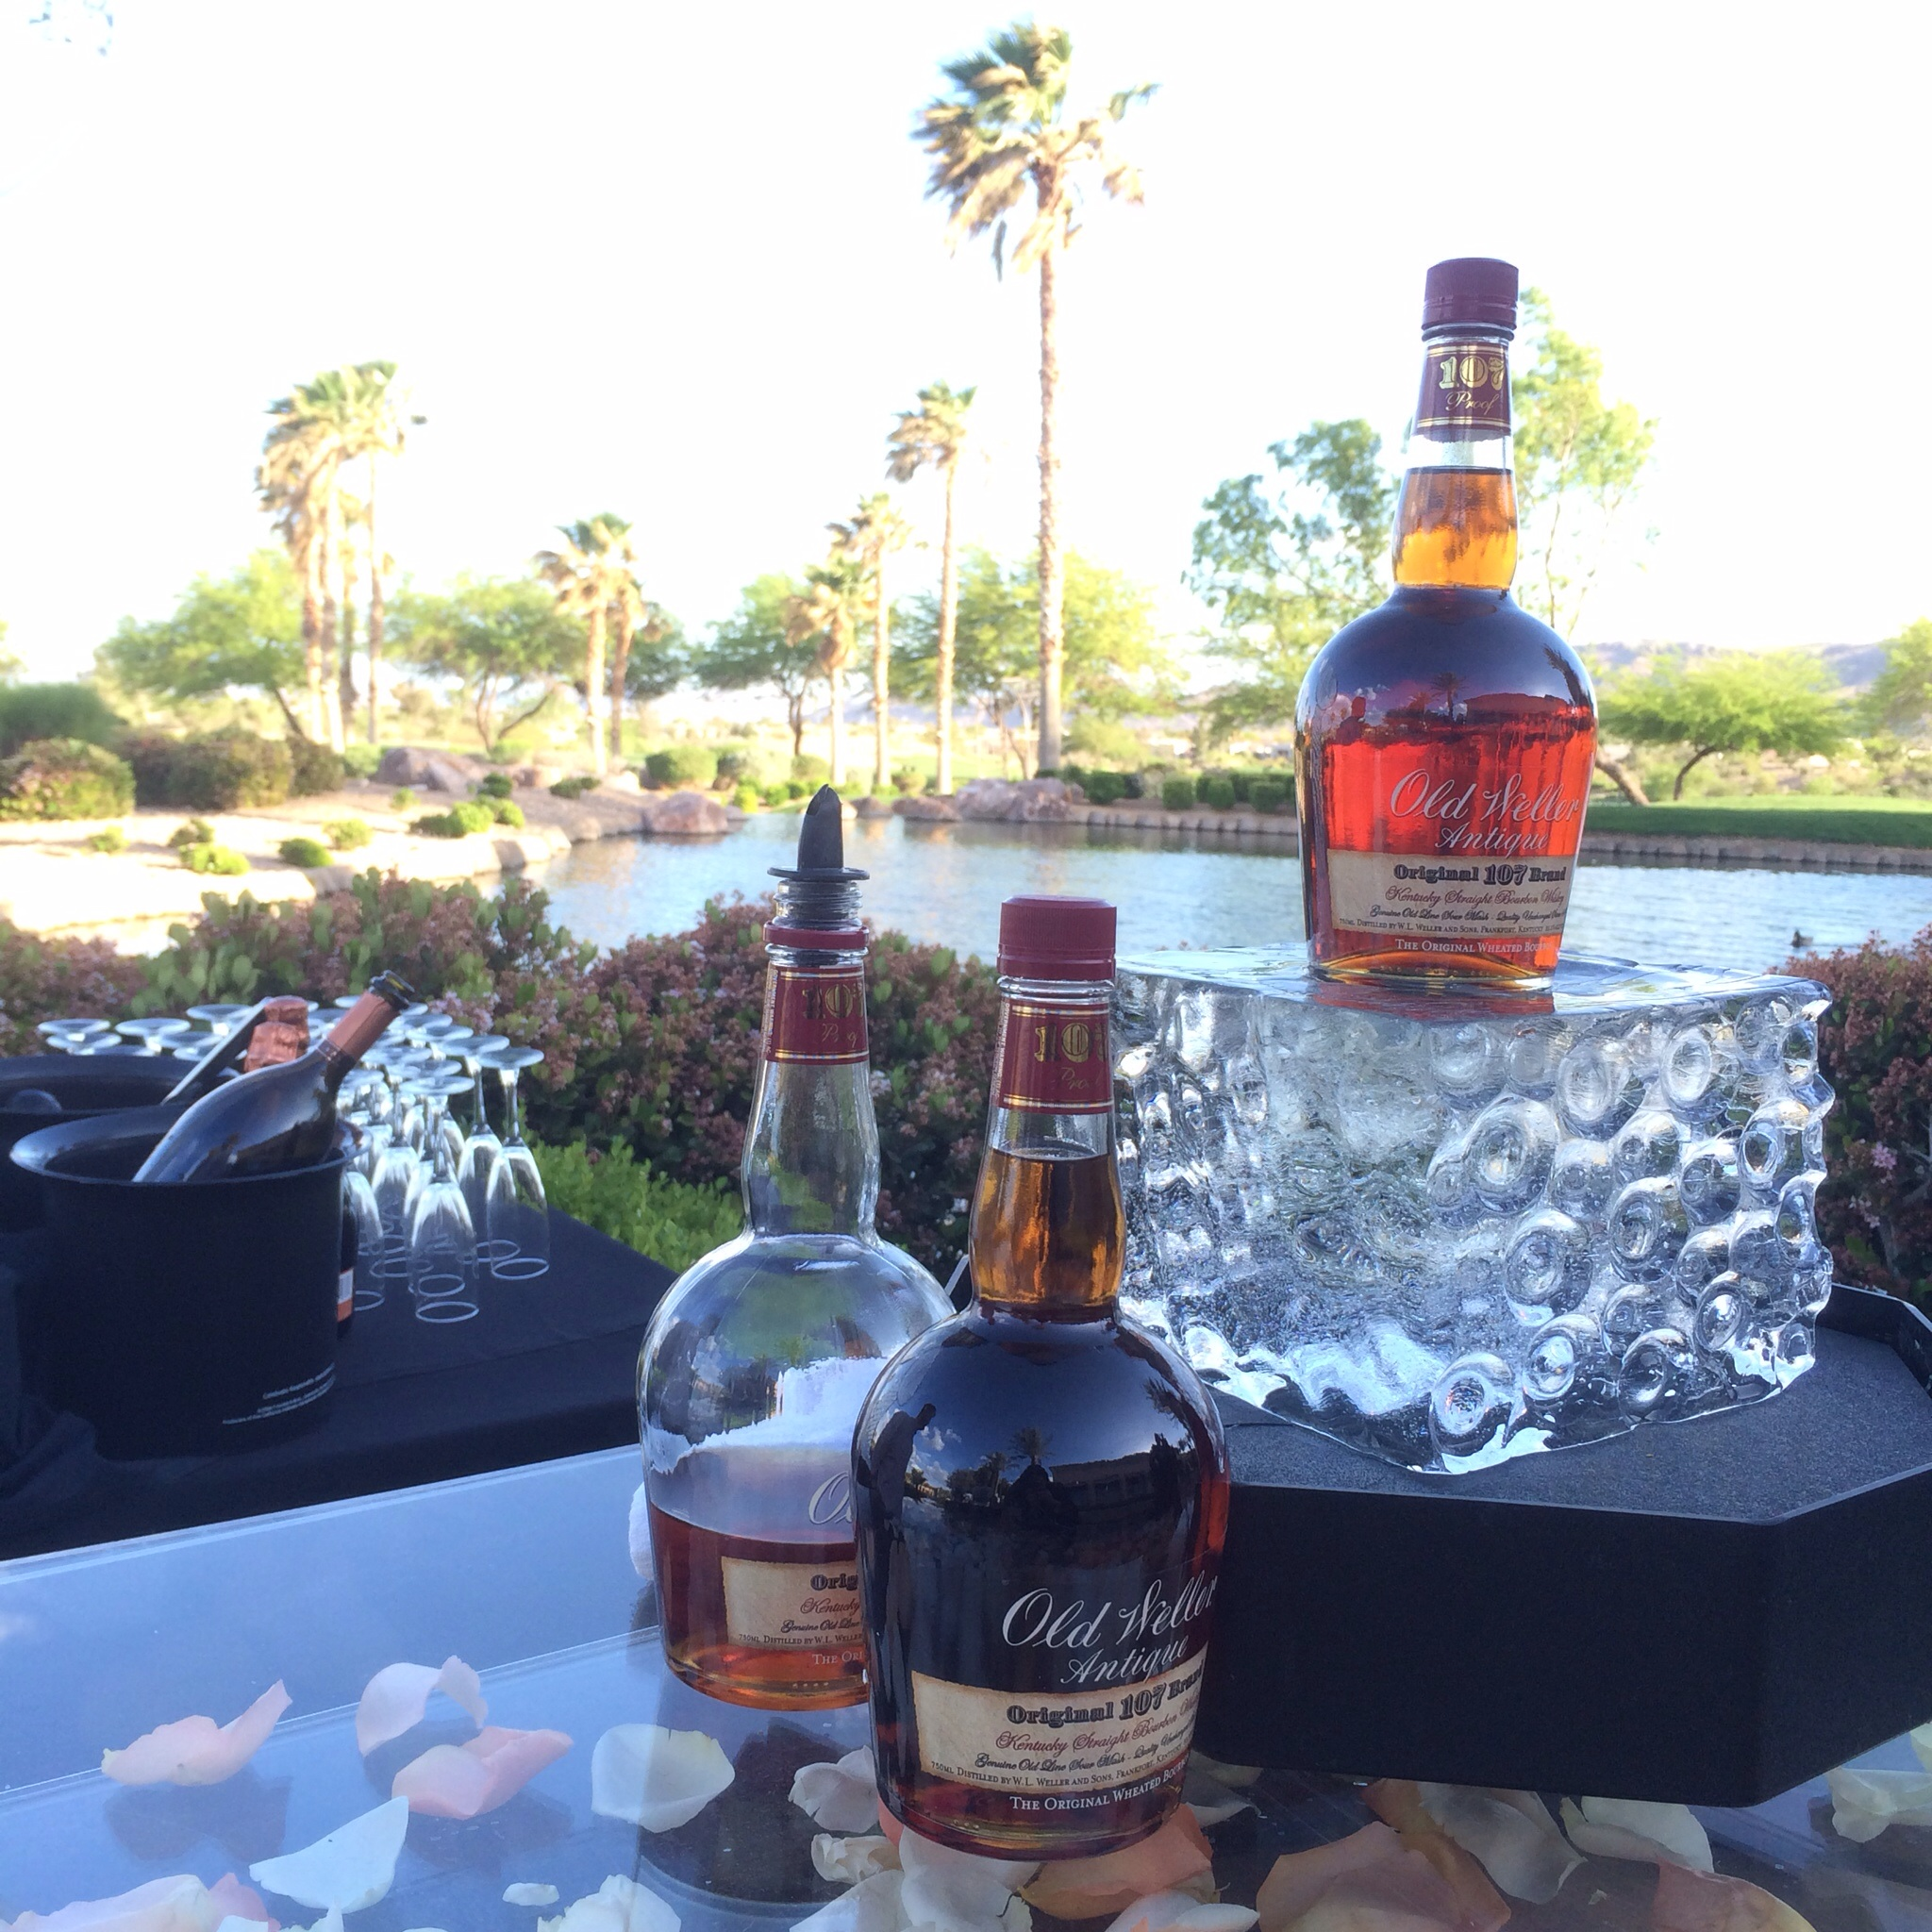 The Bourbon of the Bubbles and Bourbon Bar - Display pieces by Ice Occassions.